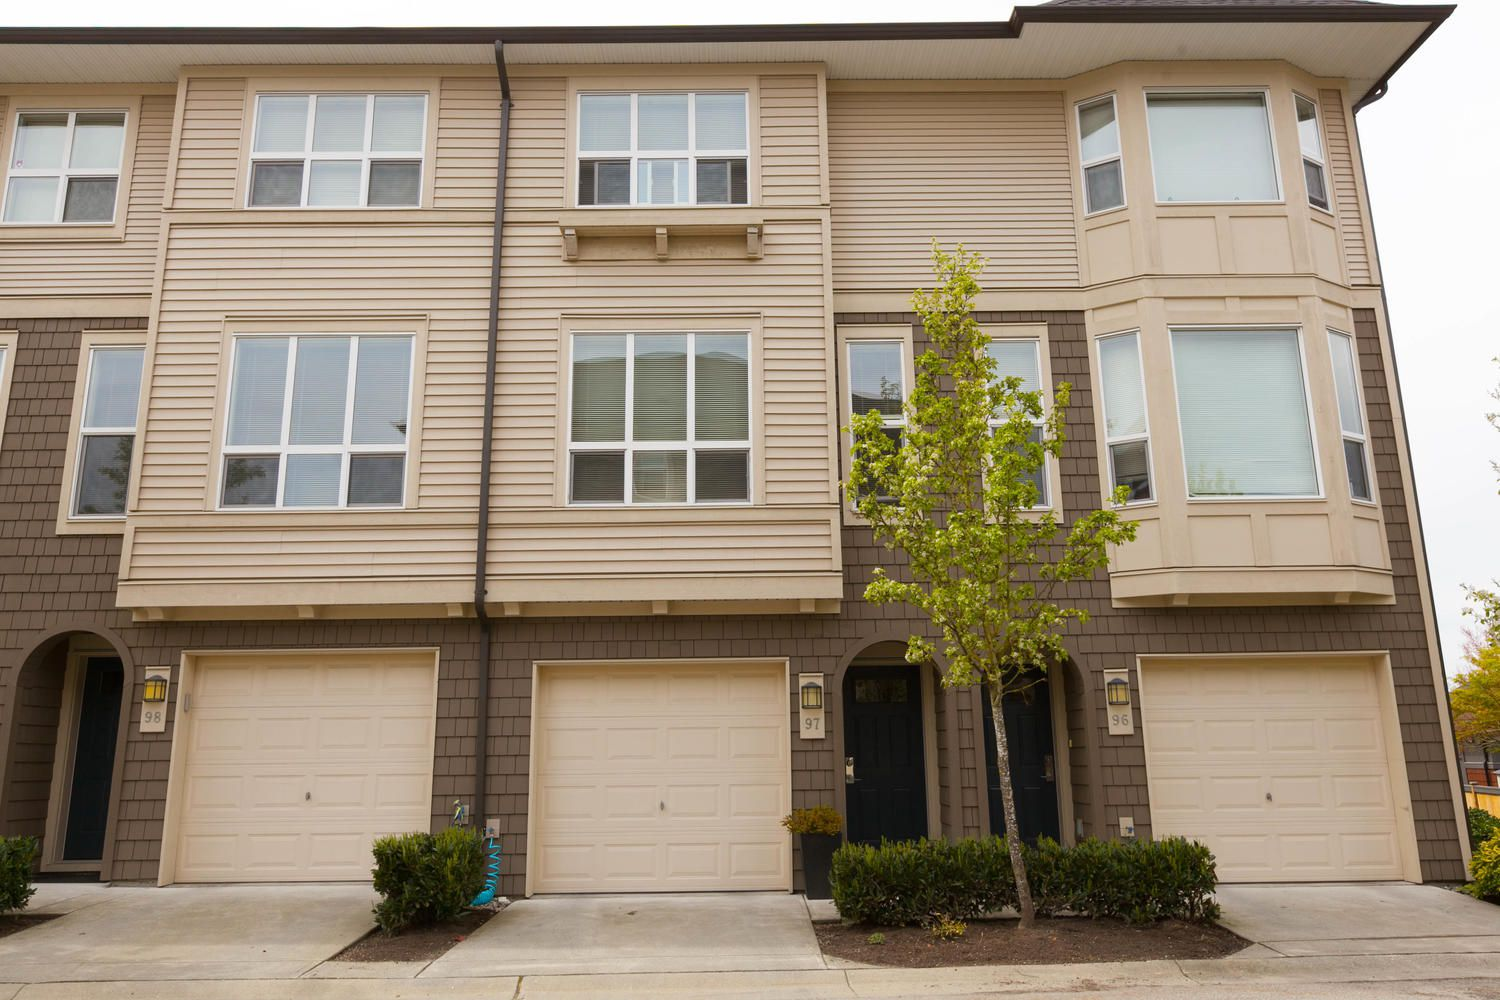 """Photo 43: Photos: 97 7938 209 Street in Langley: Willoughby Heights Townhouse for sale in """"Red Maple Park"""" : MLS®# R2260950"""